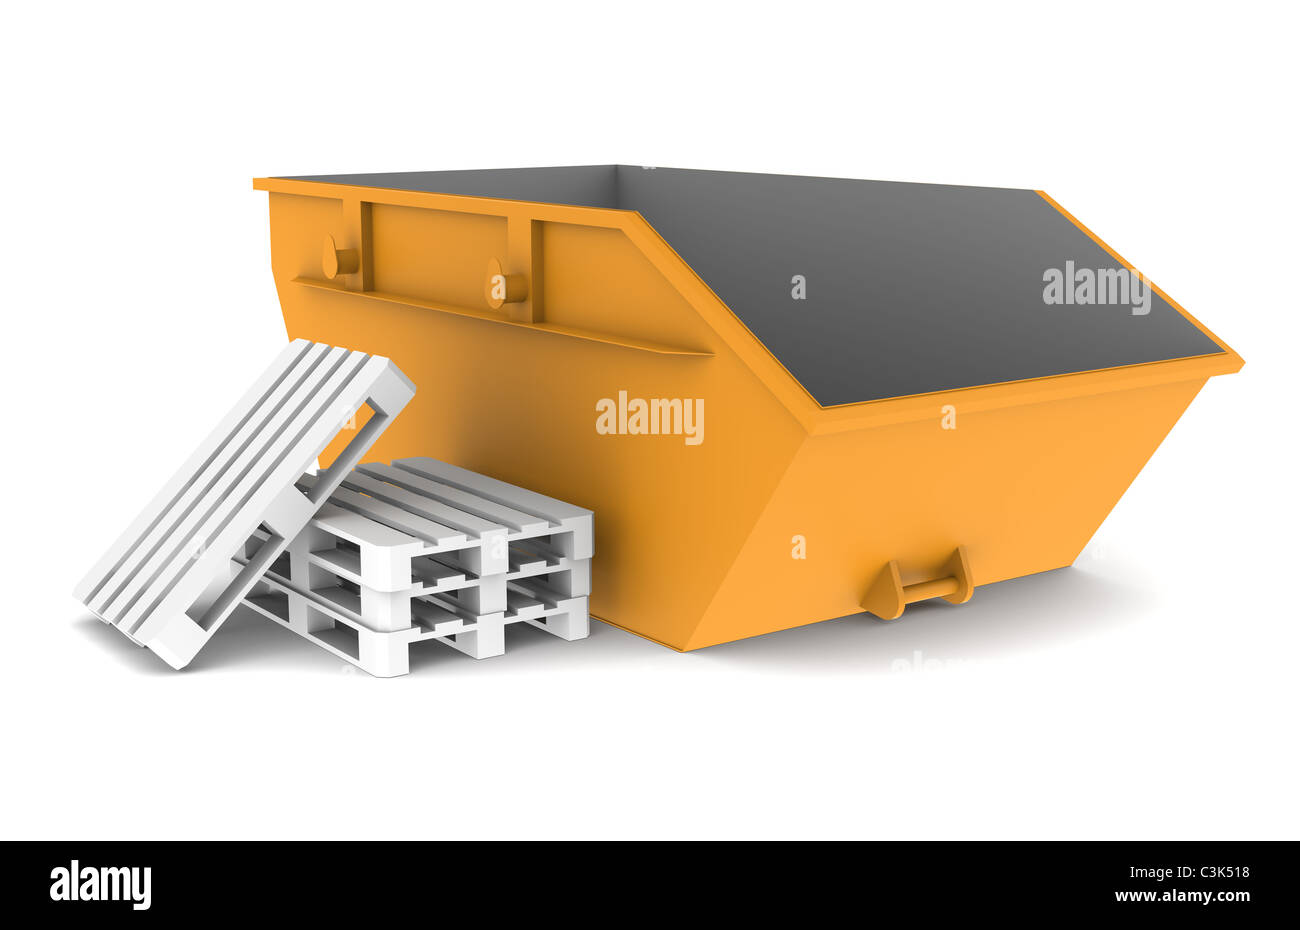 Skip. Skip, Orange with some pallets. Isolated on white. Part of a Warehouse series. - Stock Image